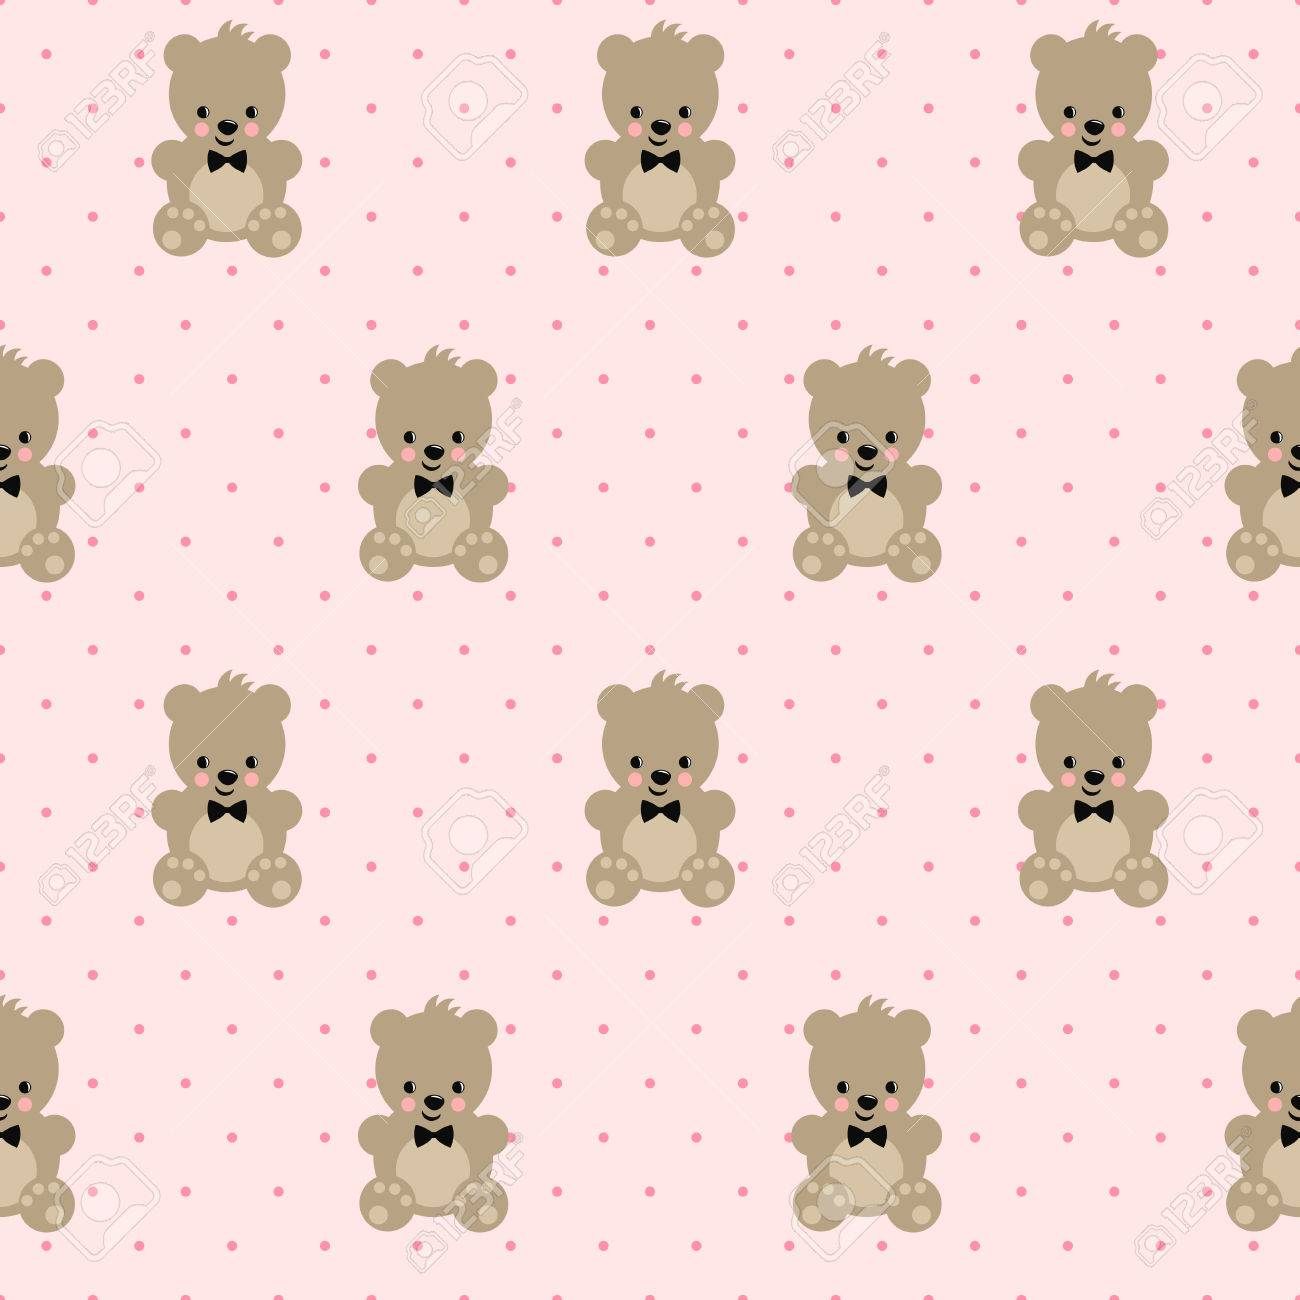 Teddy Bear Seamless Pattern On Pink Polka Dots Background Cute